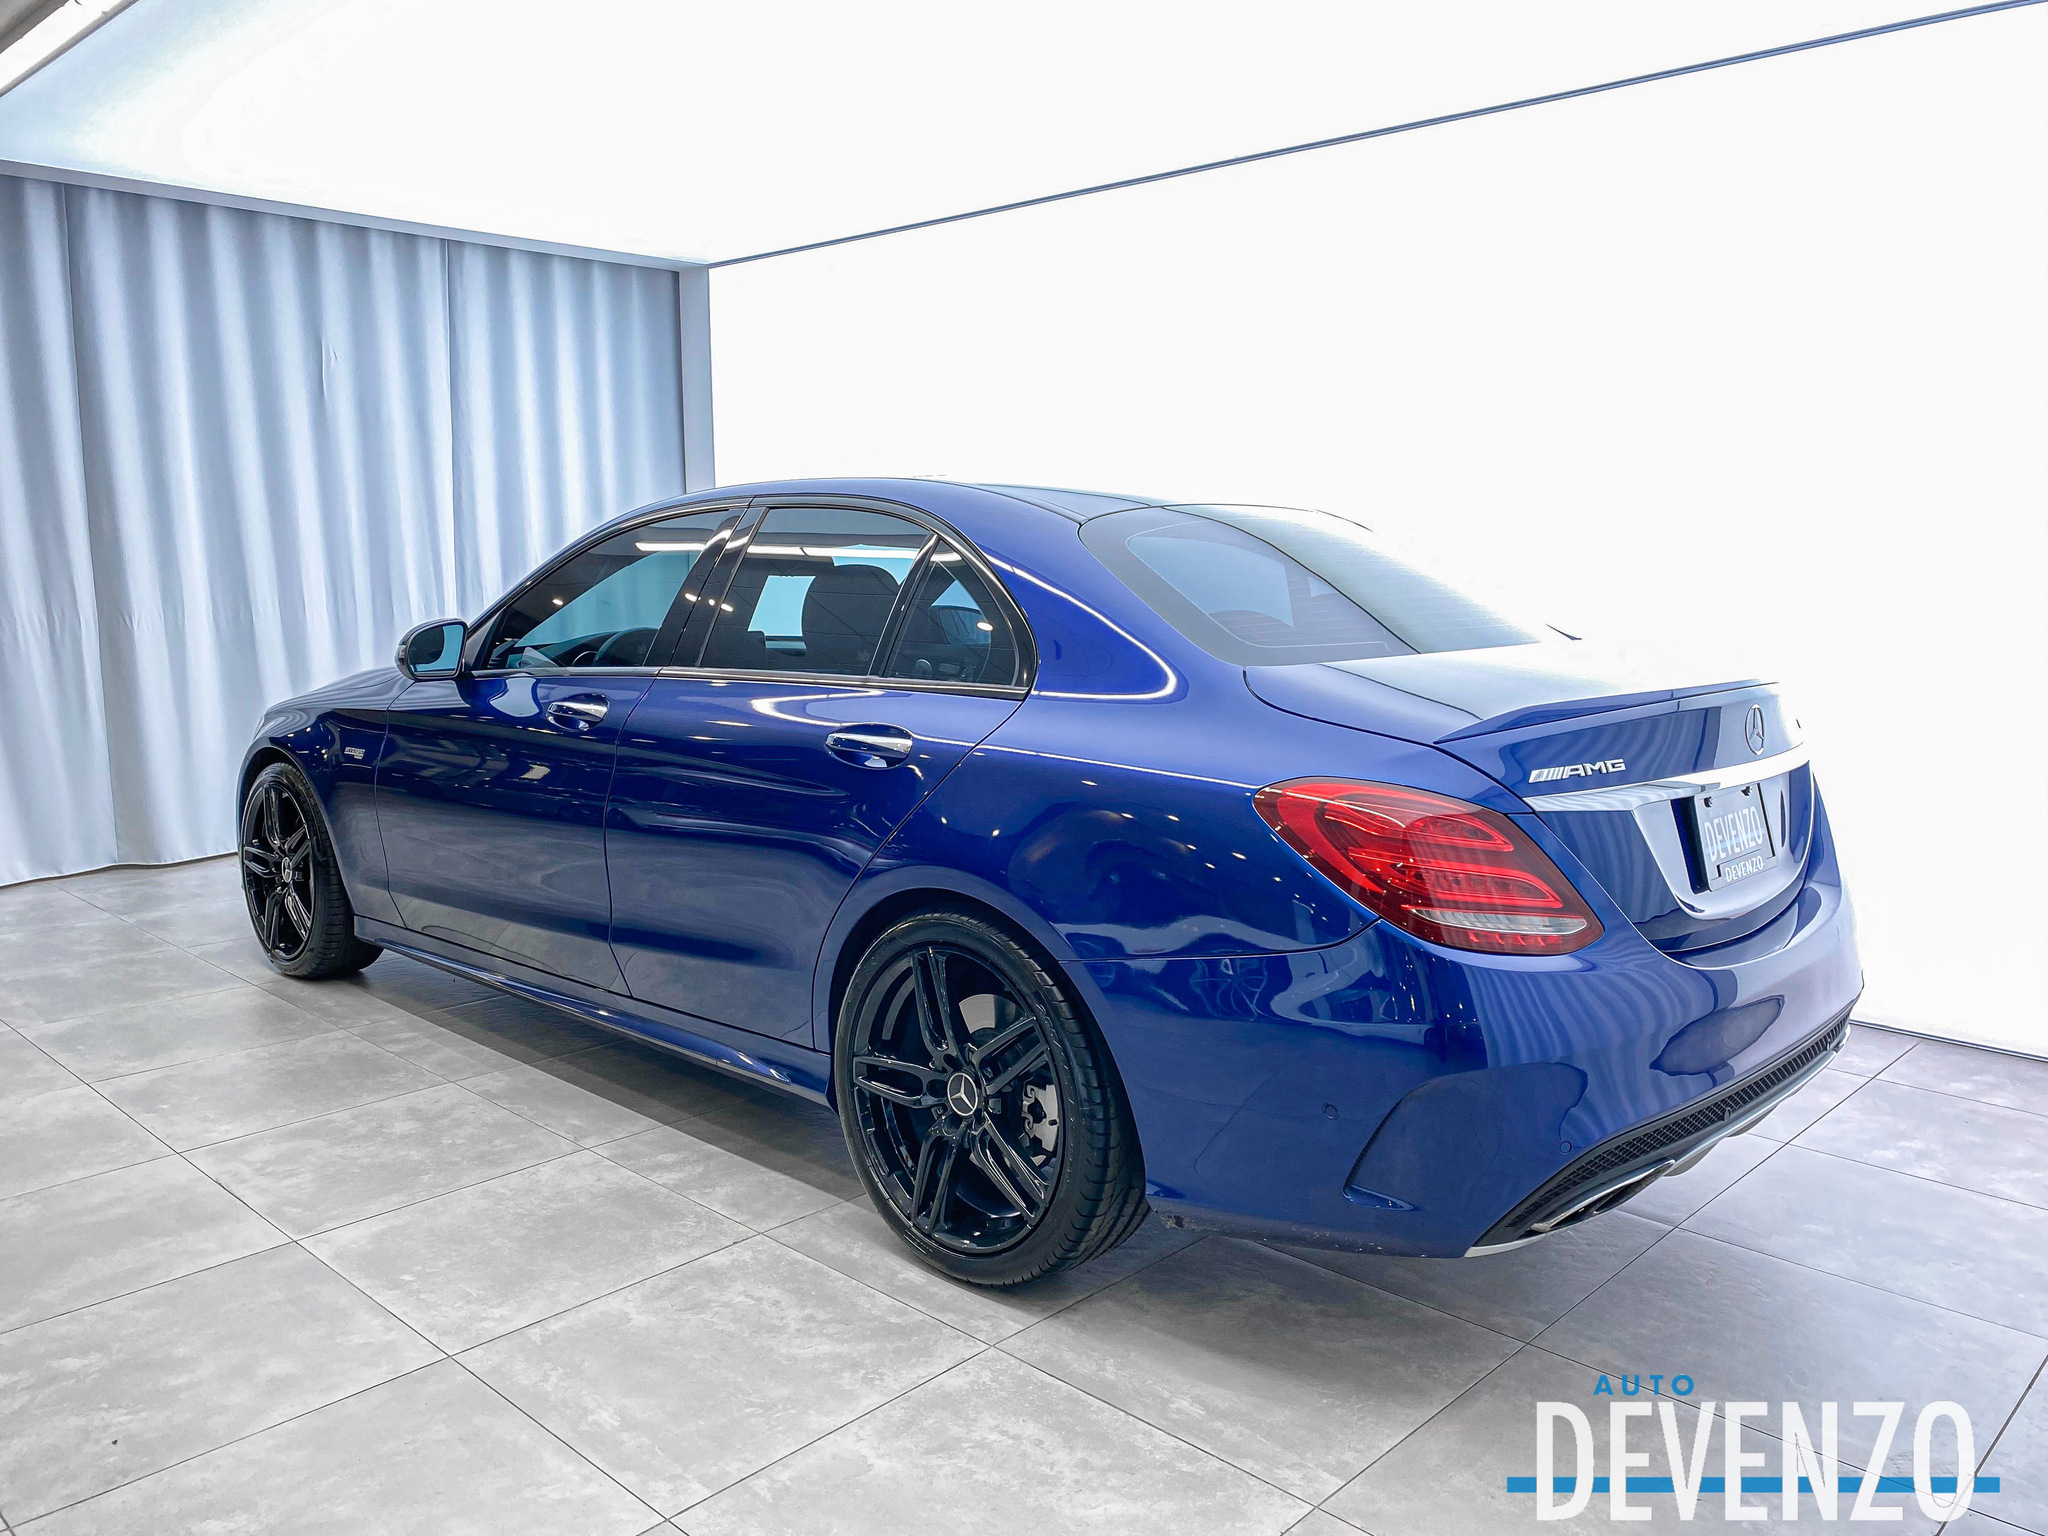 2018 Mercedes-Benz C-Class AMG C43 4MATIC BITURBO AMG DRIVERS PACKAGE / PANOR complet